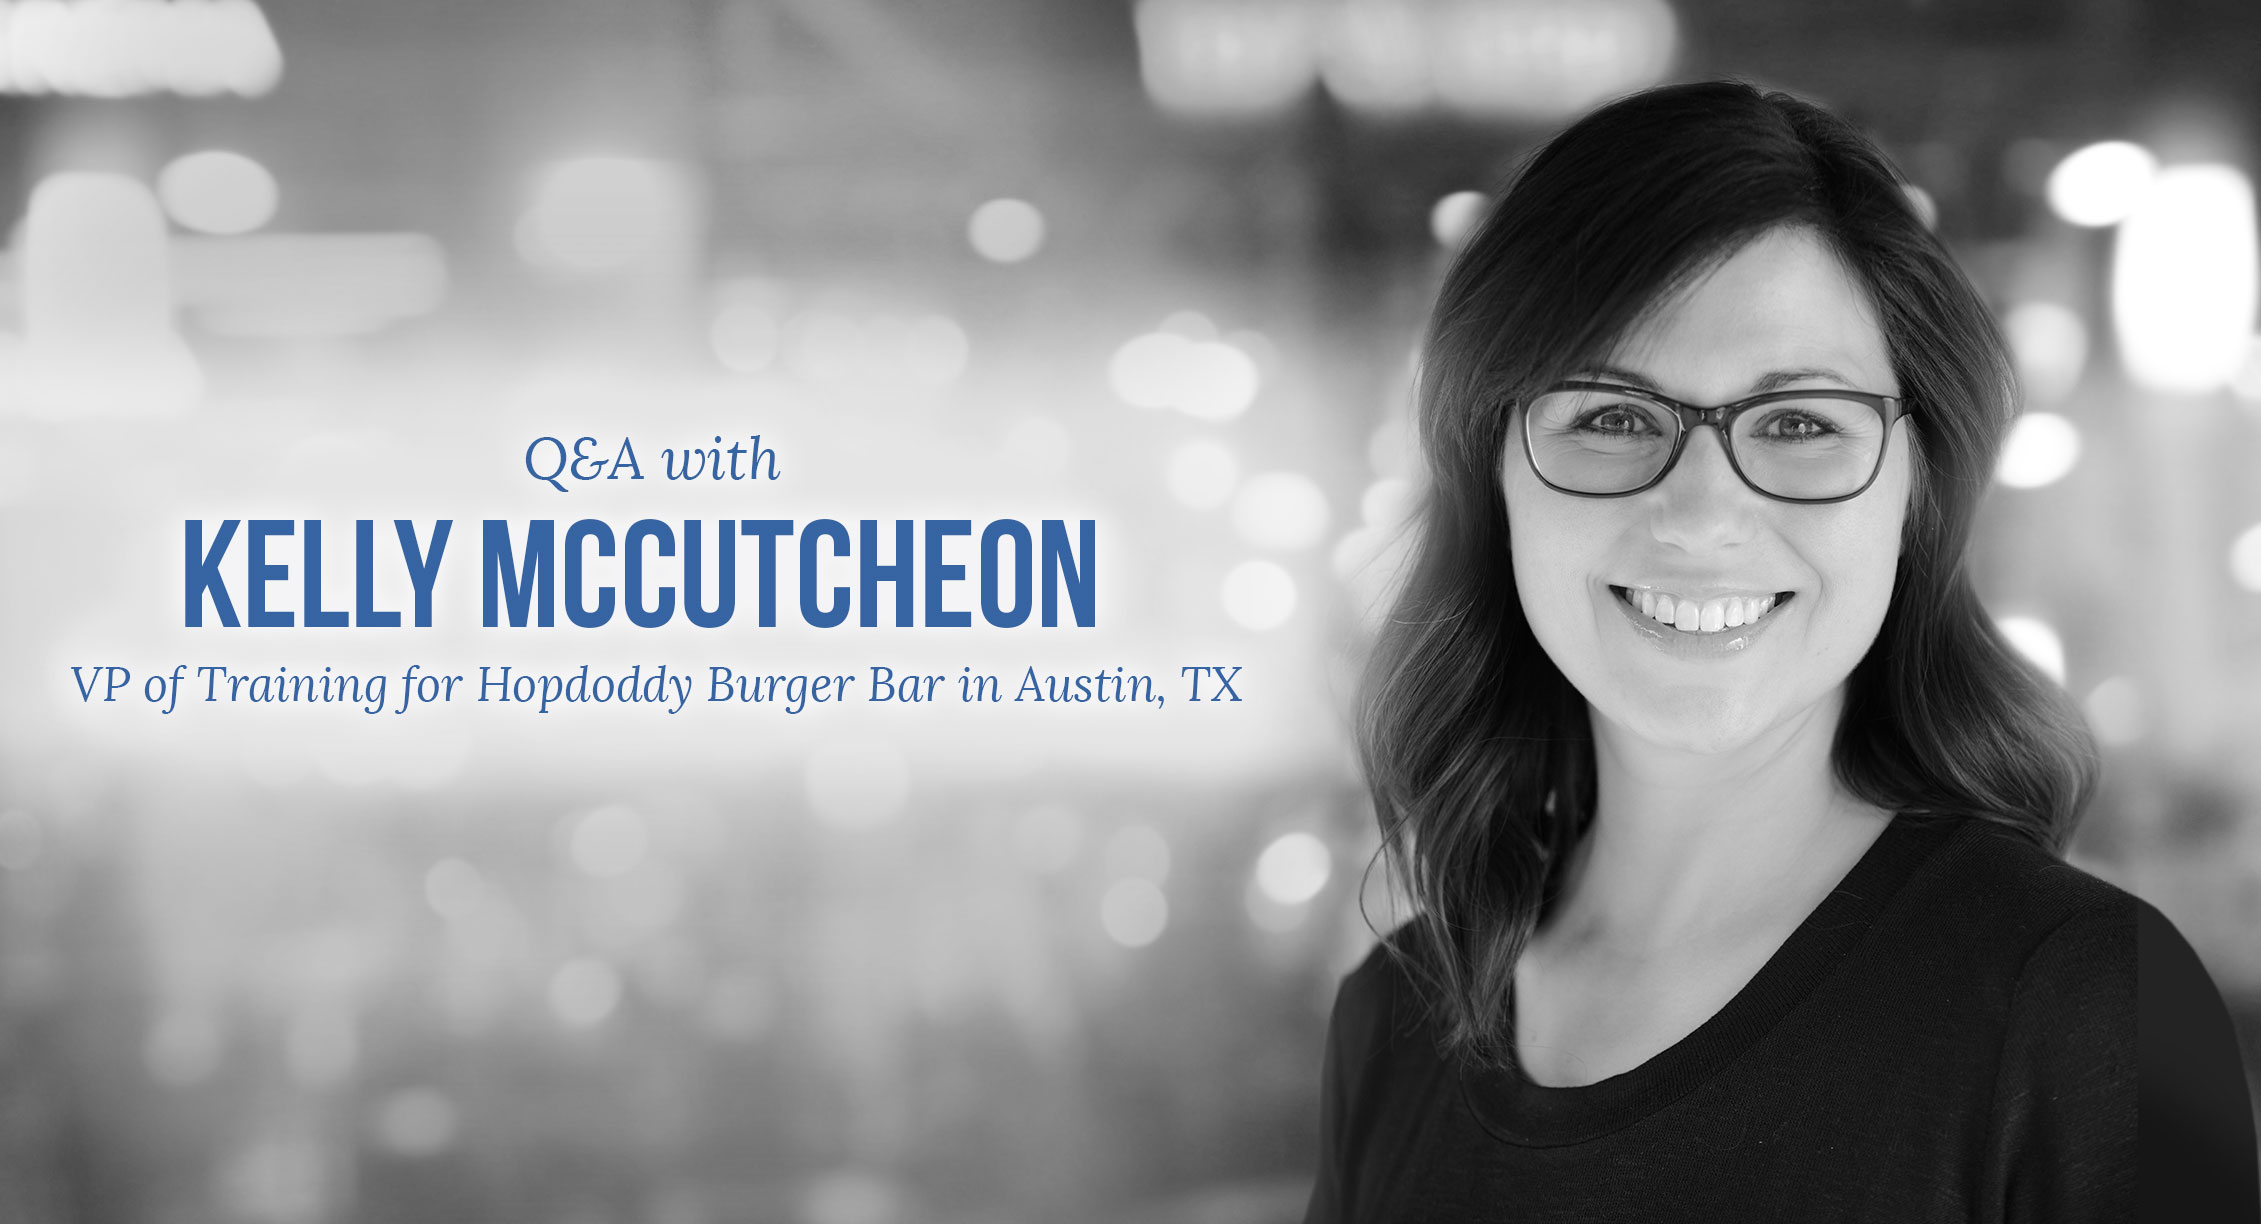 Q&A with Kelly McCutcheon